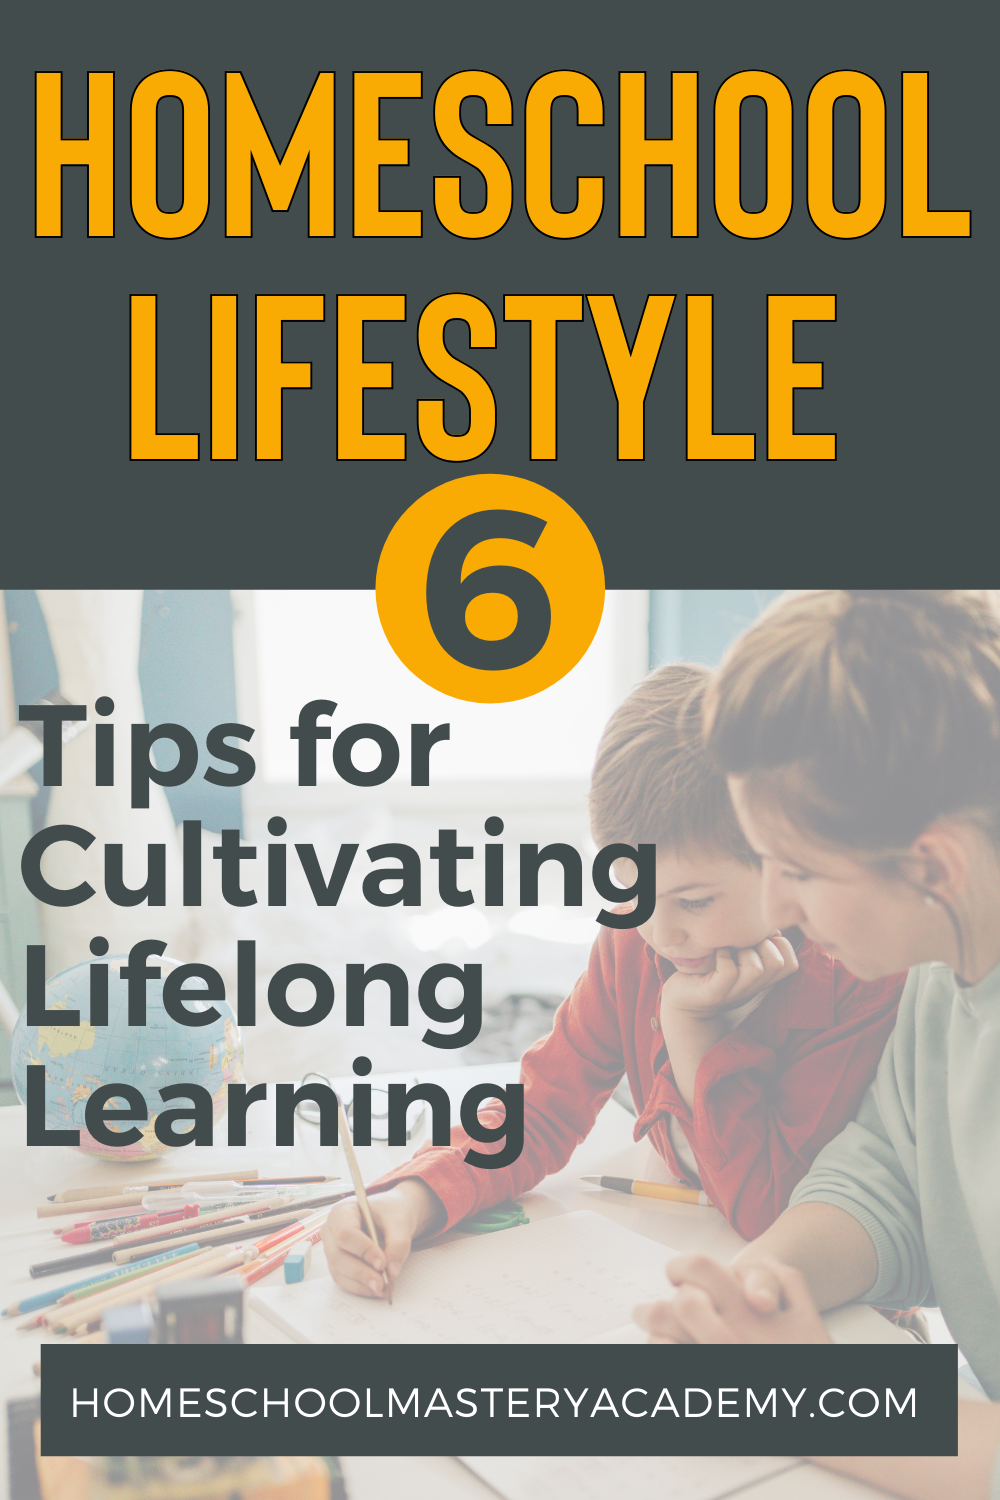 Are you ready to embrace the homeschool lifestyle? Here are 6 tips for cultivating lifelong learners from veteran homeschool moms! #homeschool #homeschooltips #homeschoollifestyle